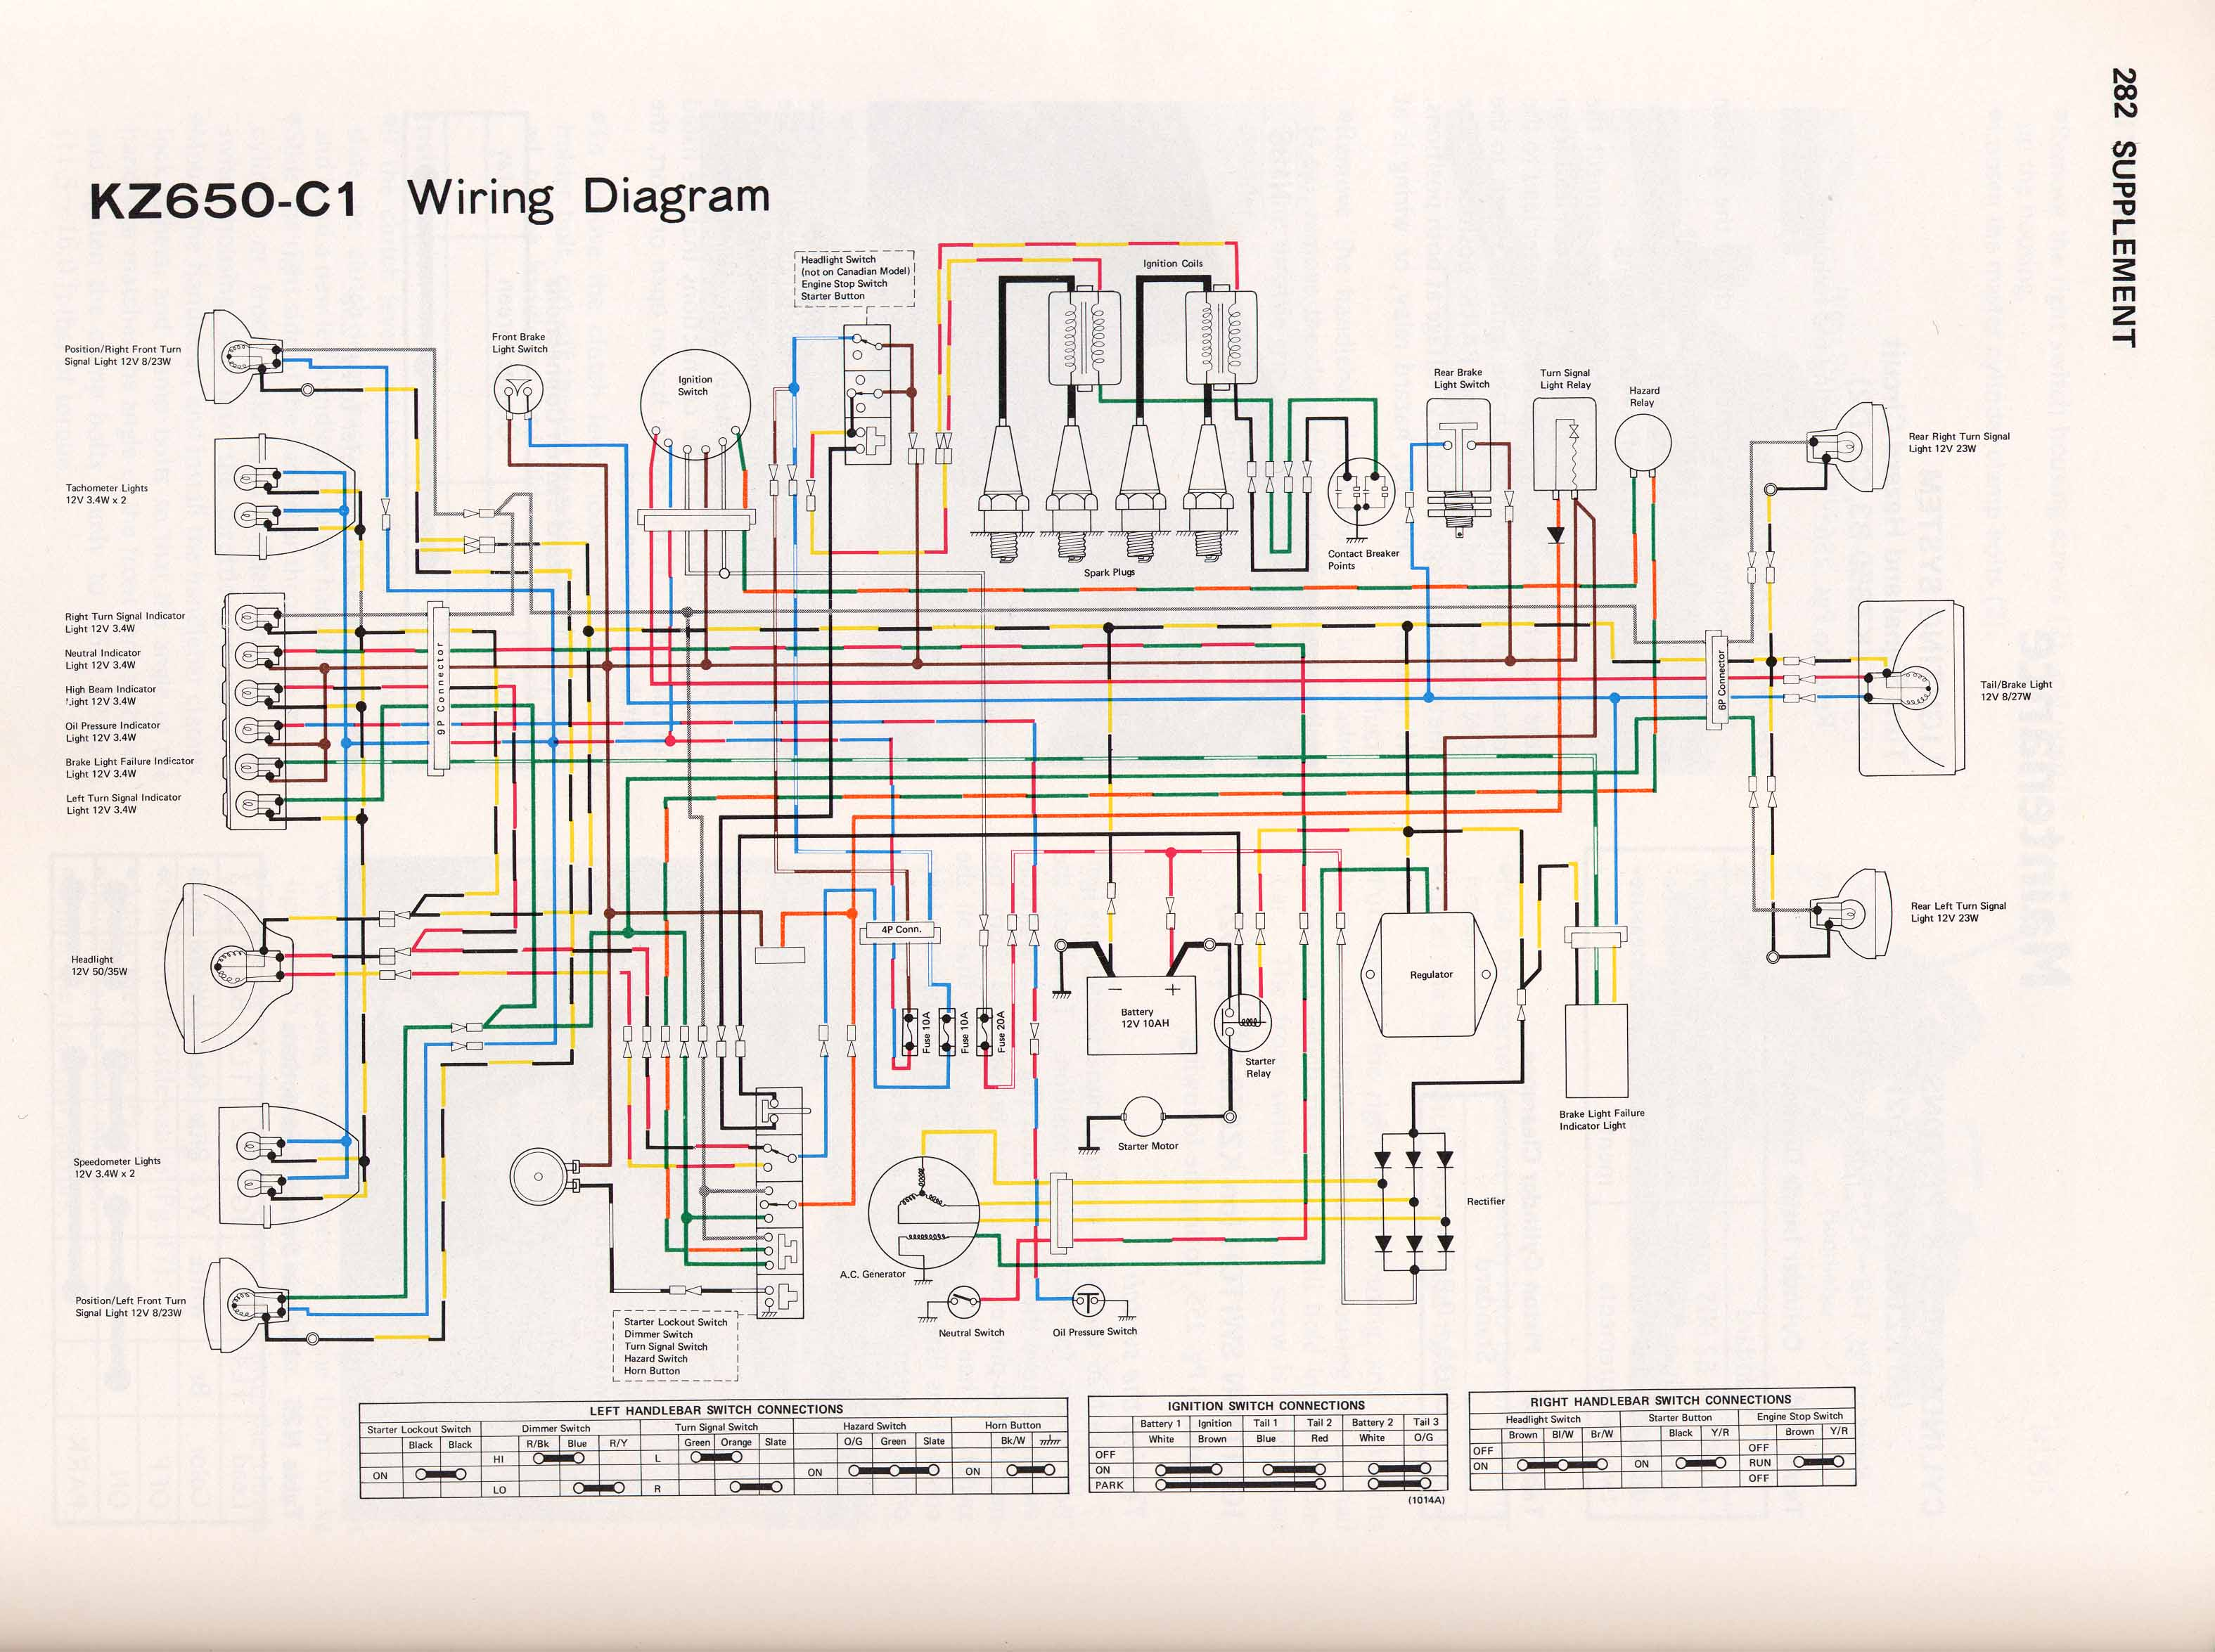 KZ650 C1 kz650 info wiring diagrams kawasaki wiring diagrams at gsmportal.co